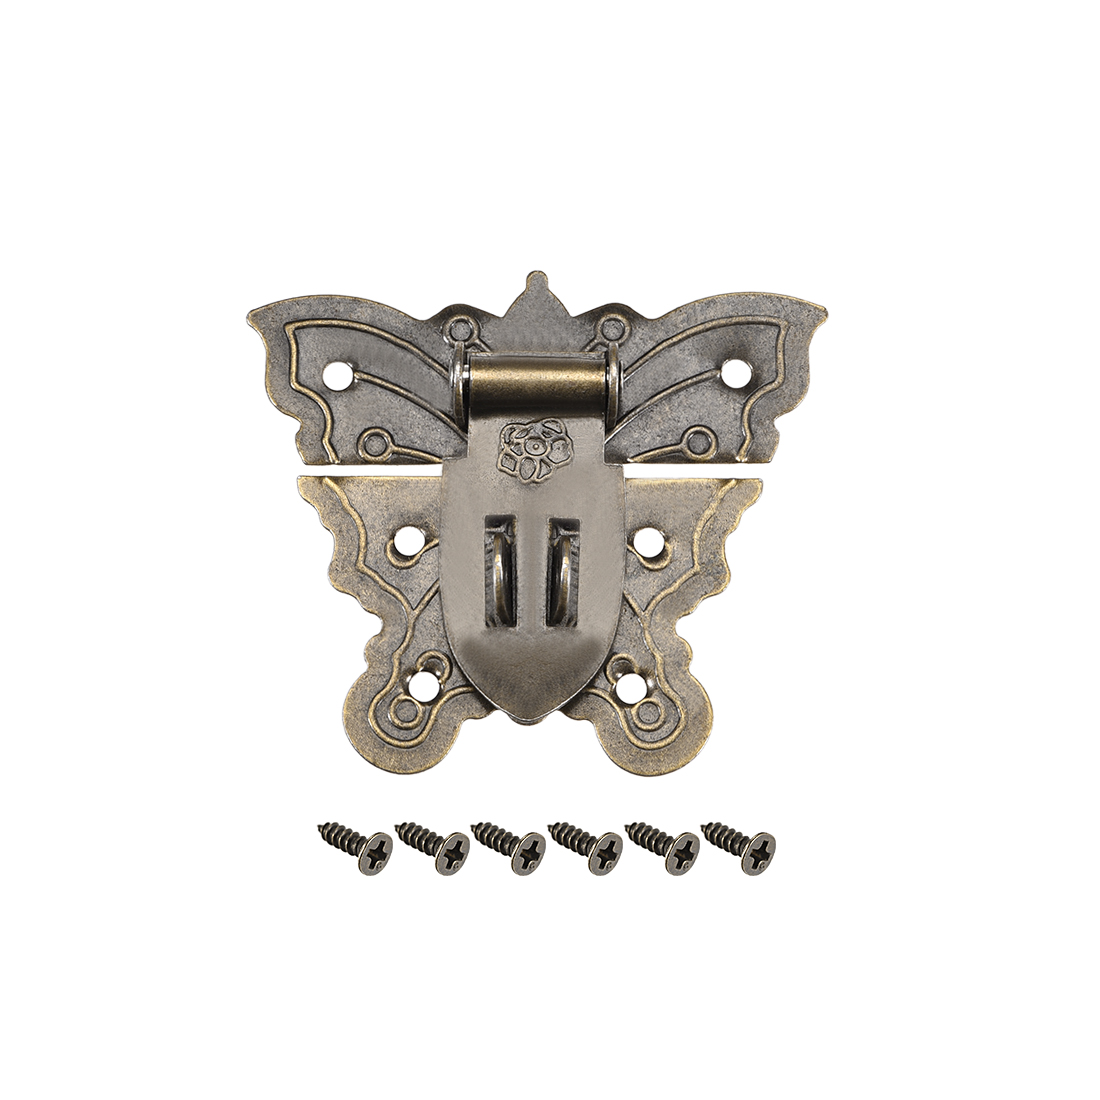 Wood Case Box Butterfly Hasp 60x51mm Antique Latches Hook Bronze Tone